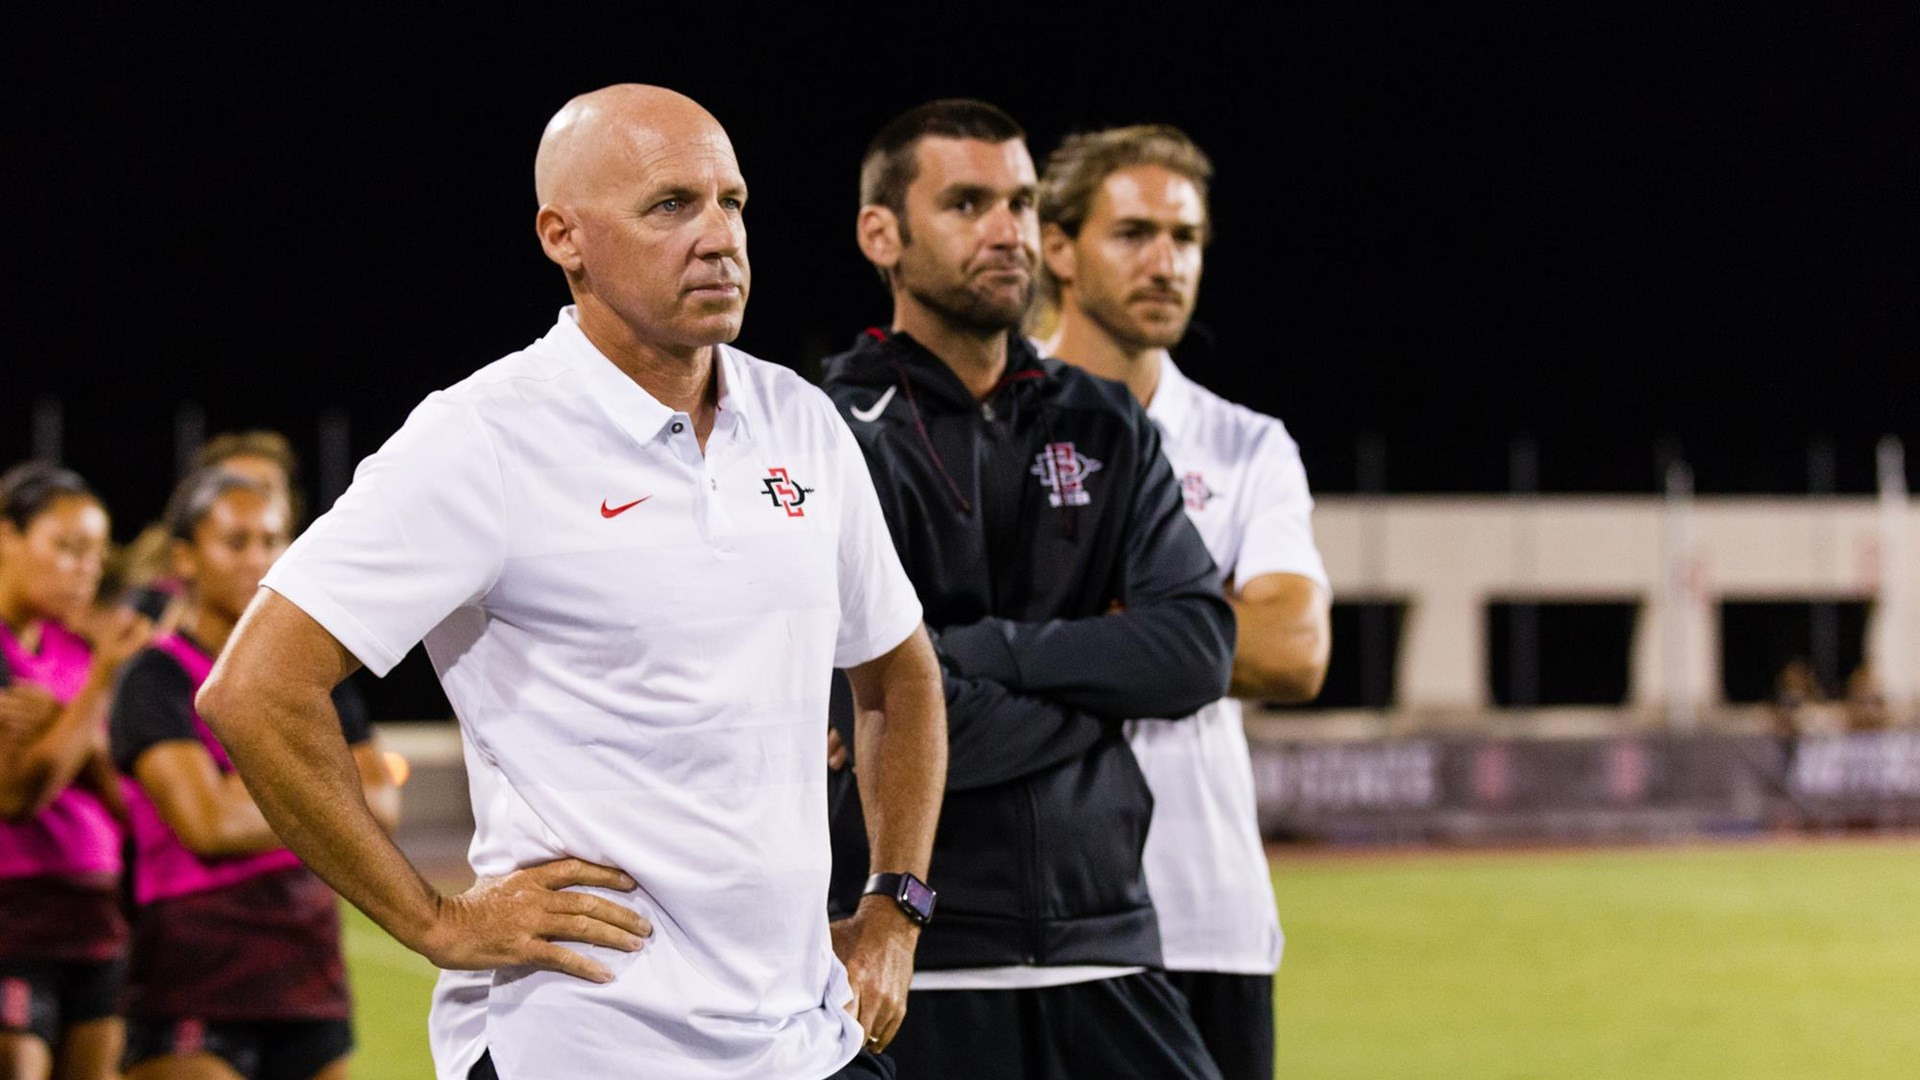 W  Soccer set to host ID and youth camps this summer - SDSU Athletics